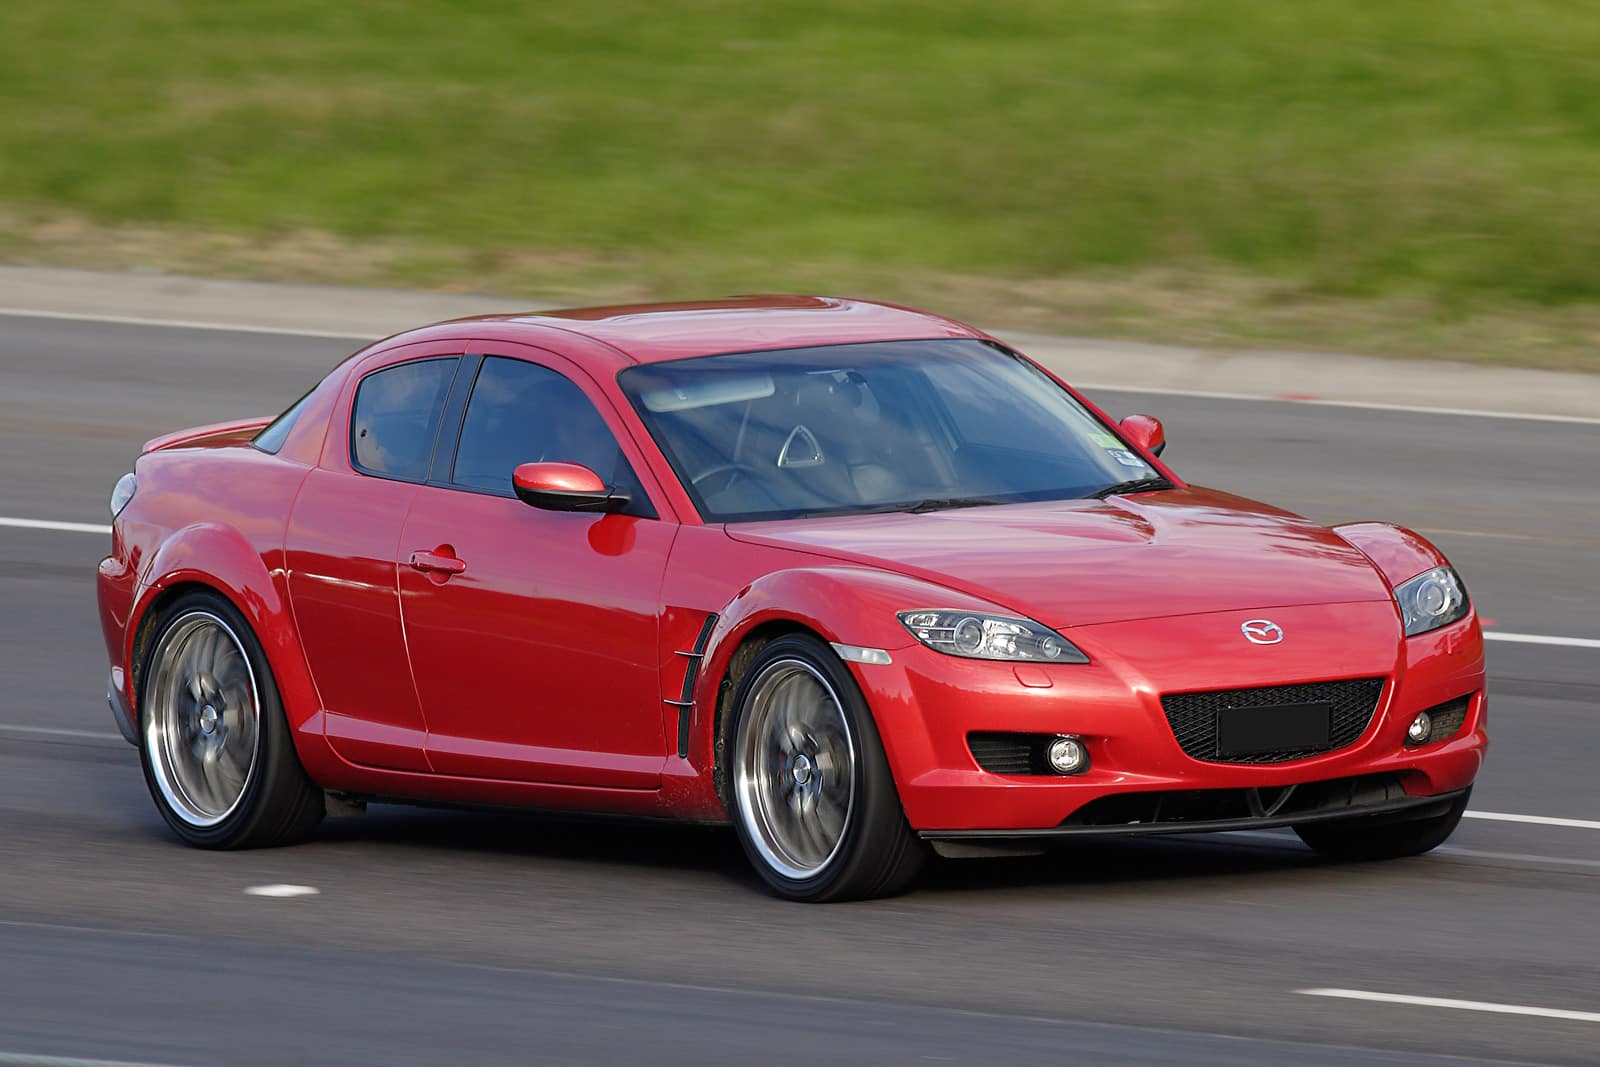 Madza RX8 red